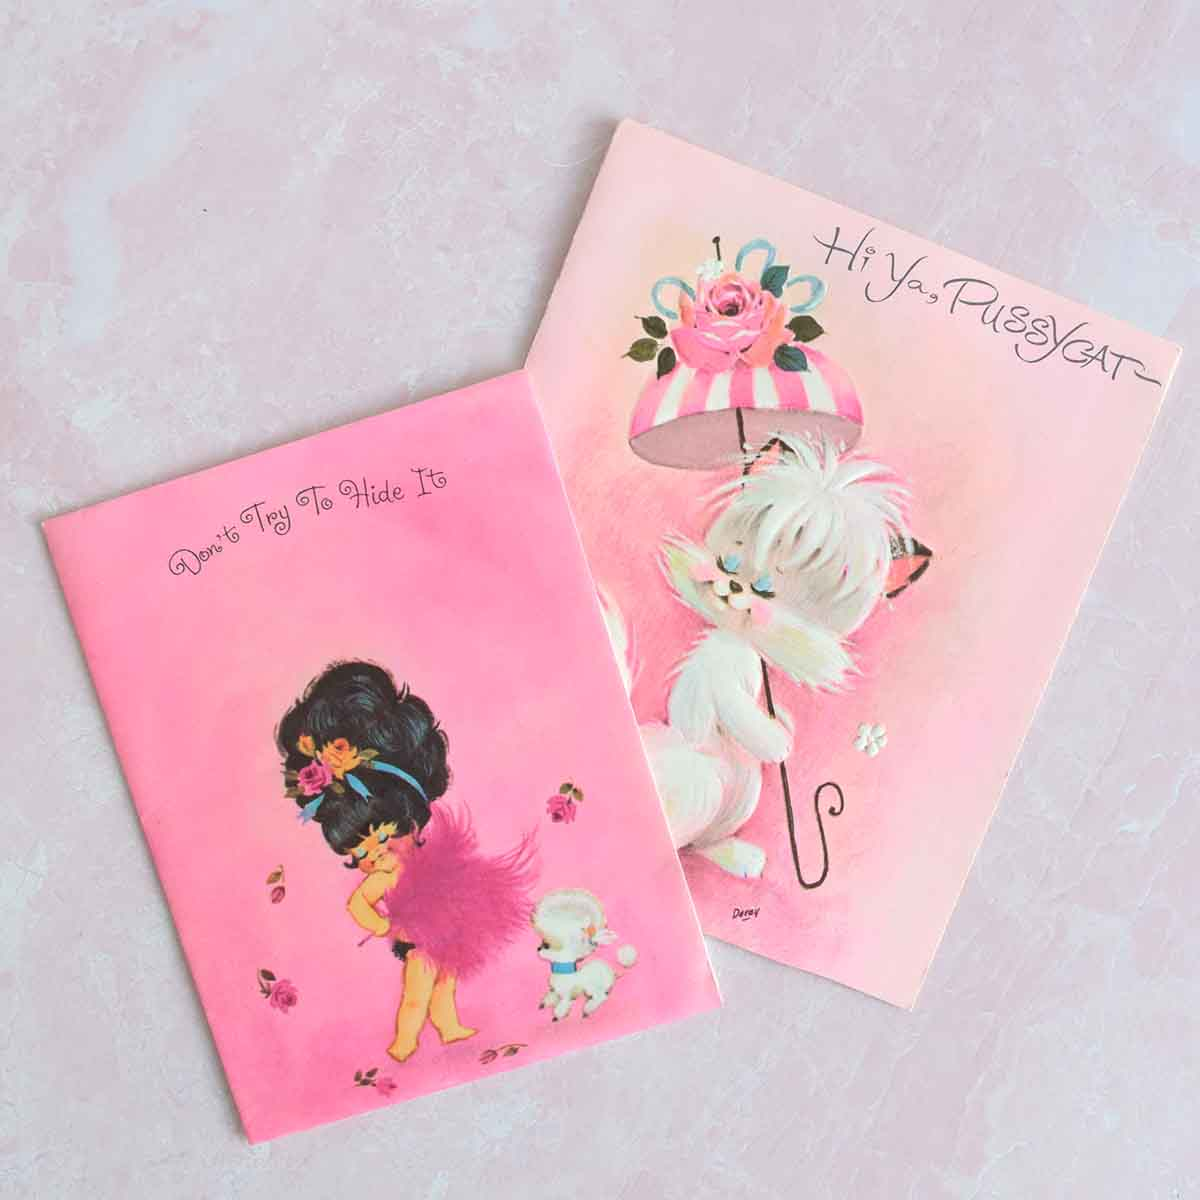 Two pink, vintage cards- one with a little girl and poodle and the other is a cat with an umbrella.